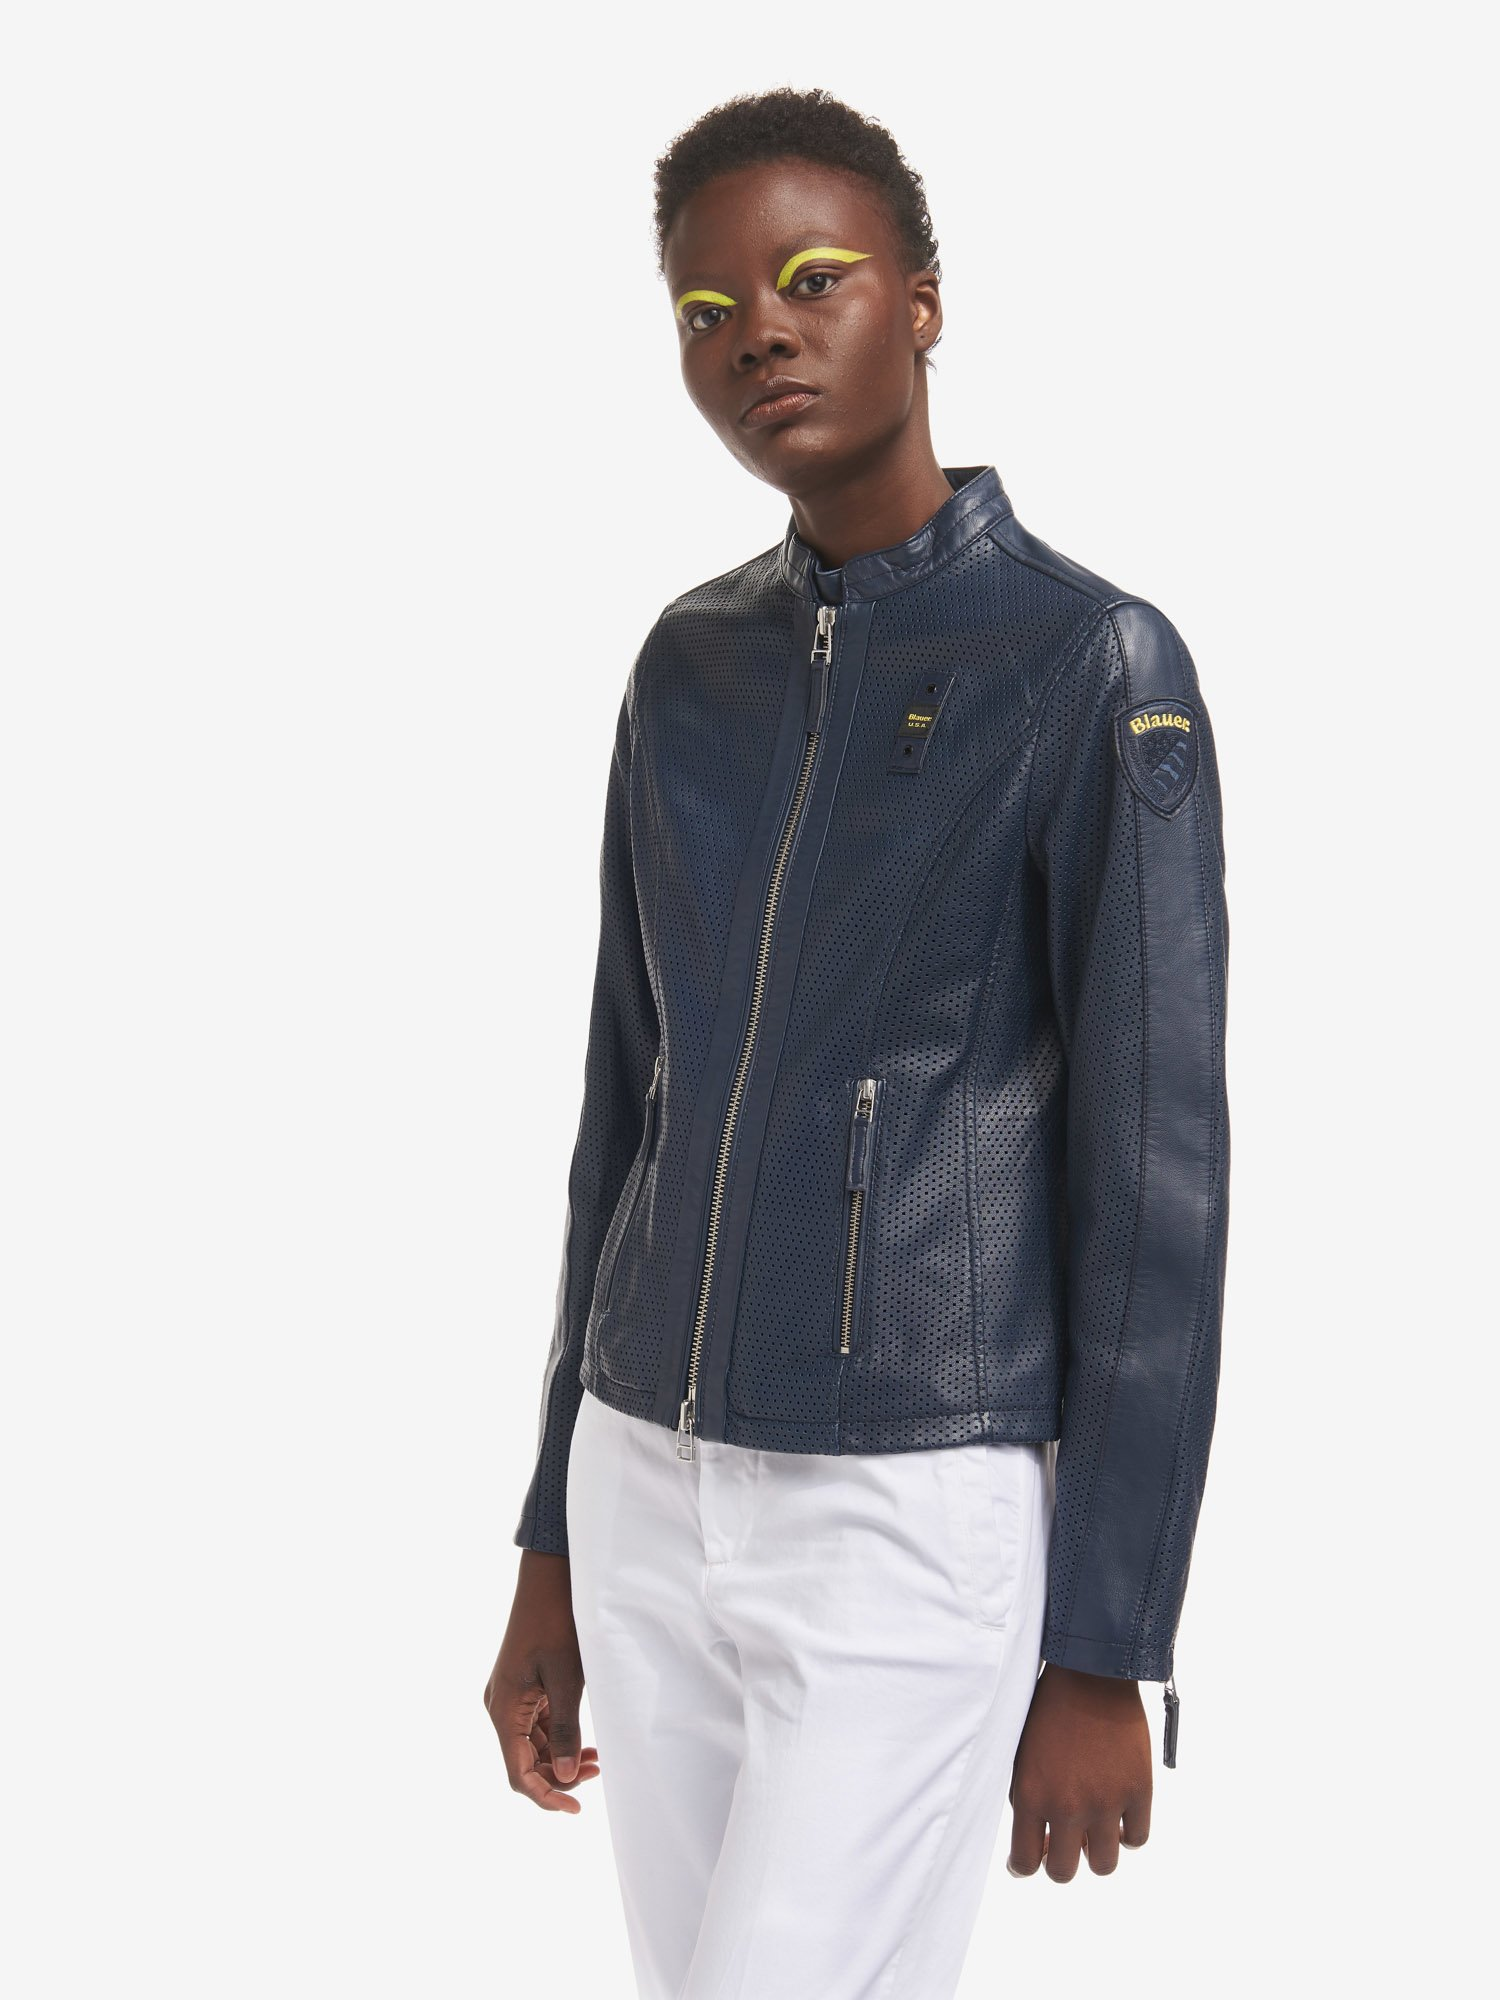 EDITH PERFORATED AND LINED BIKER JACKET - Blauer